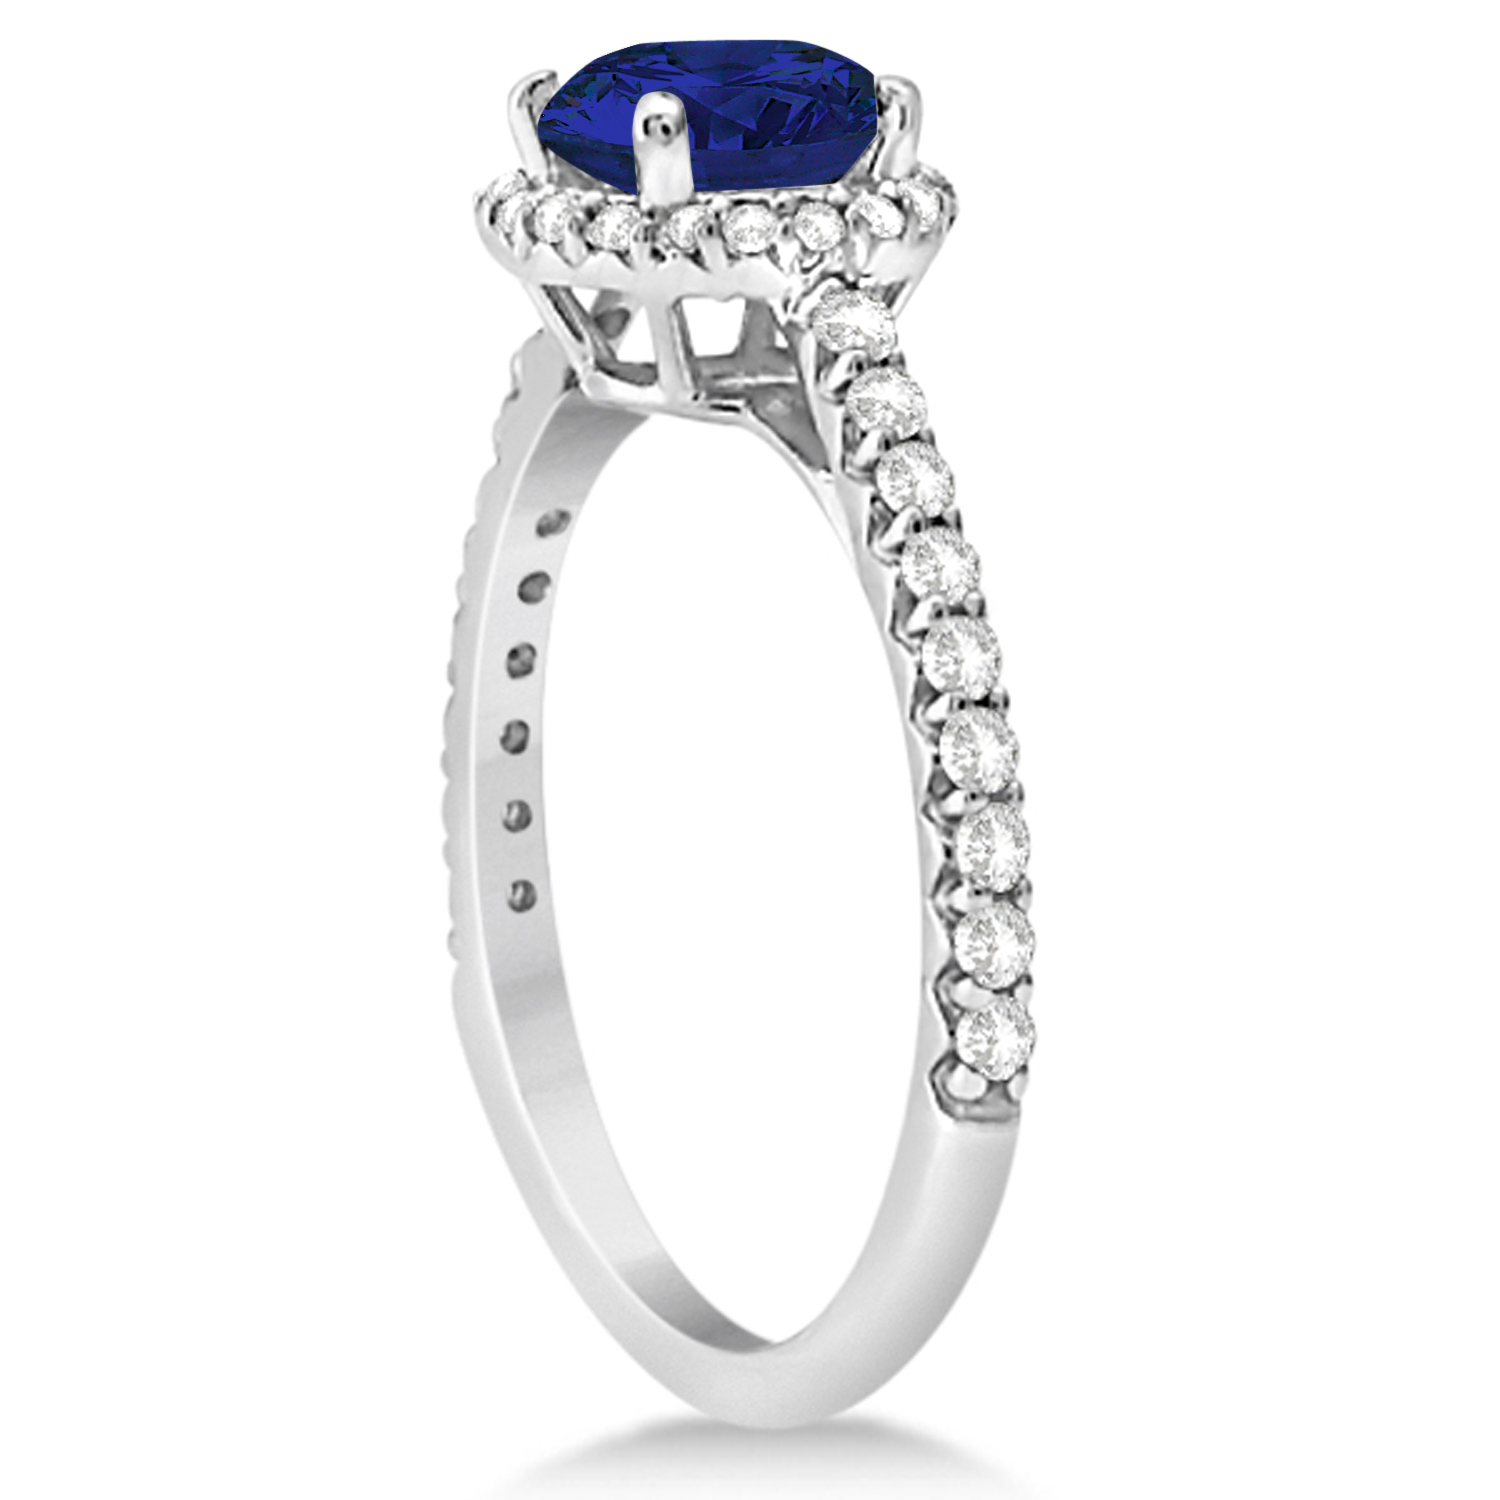 Halo Blue Sapphire & Diamond Engagement Ring  14K White Gold 1.91ct